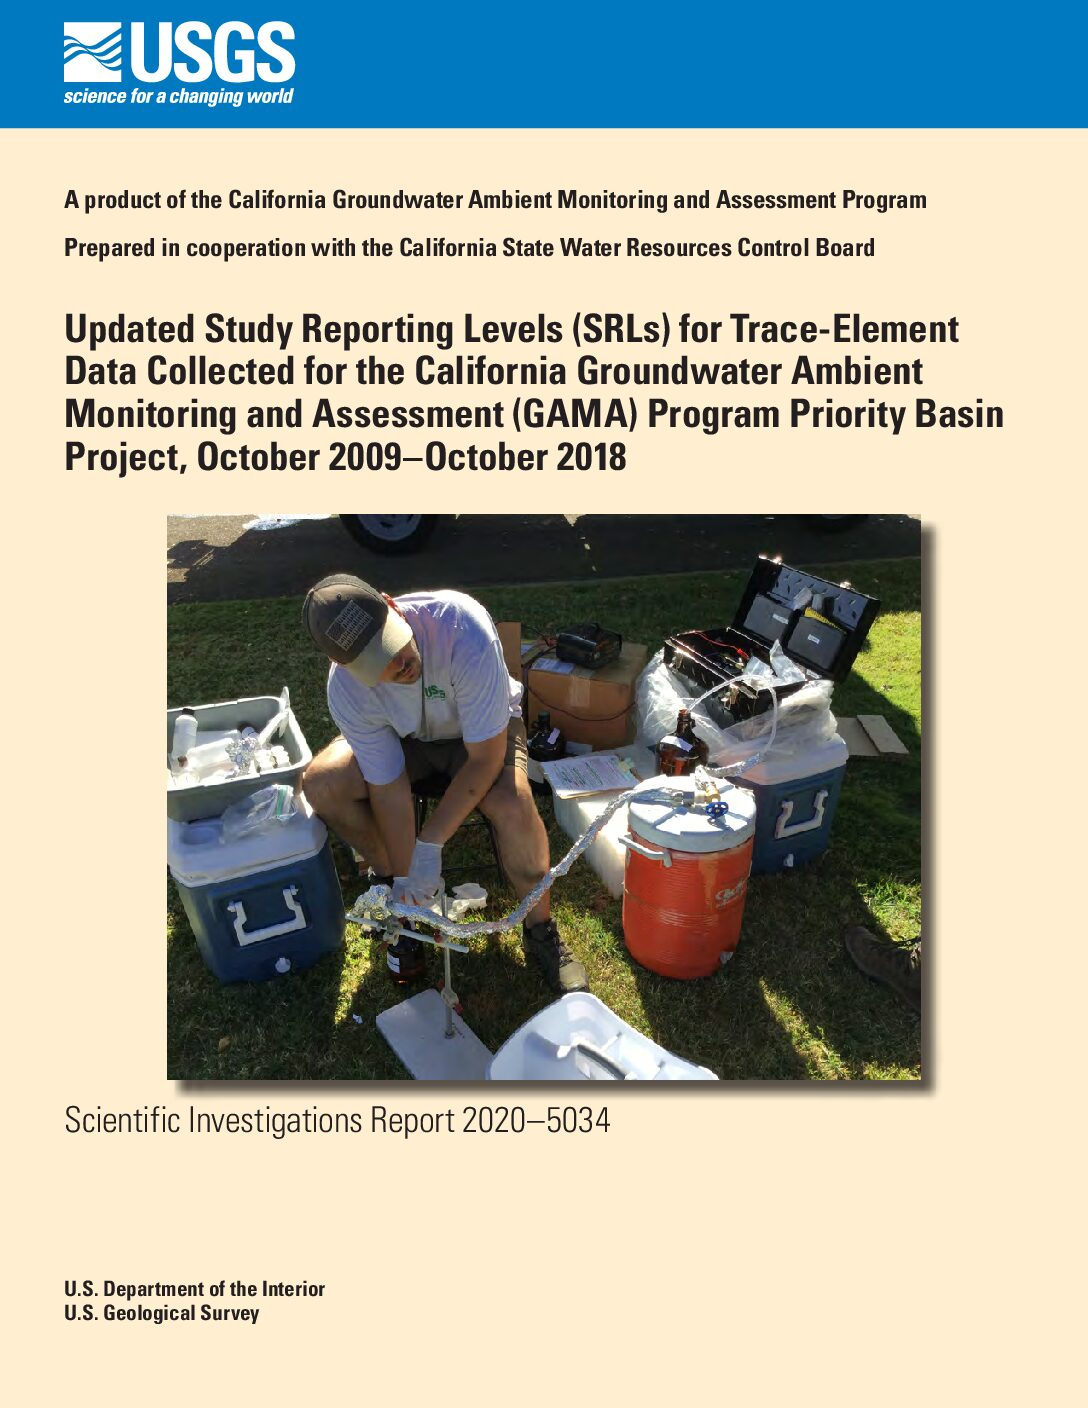 Updated Study Reporting Levels (SRLs) for Trace-Element Data Collected for the California Groundwater Ambient Monitoring and Assessment (GAMA) Program Priority Basin Project, October 2009–October 2018